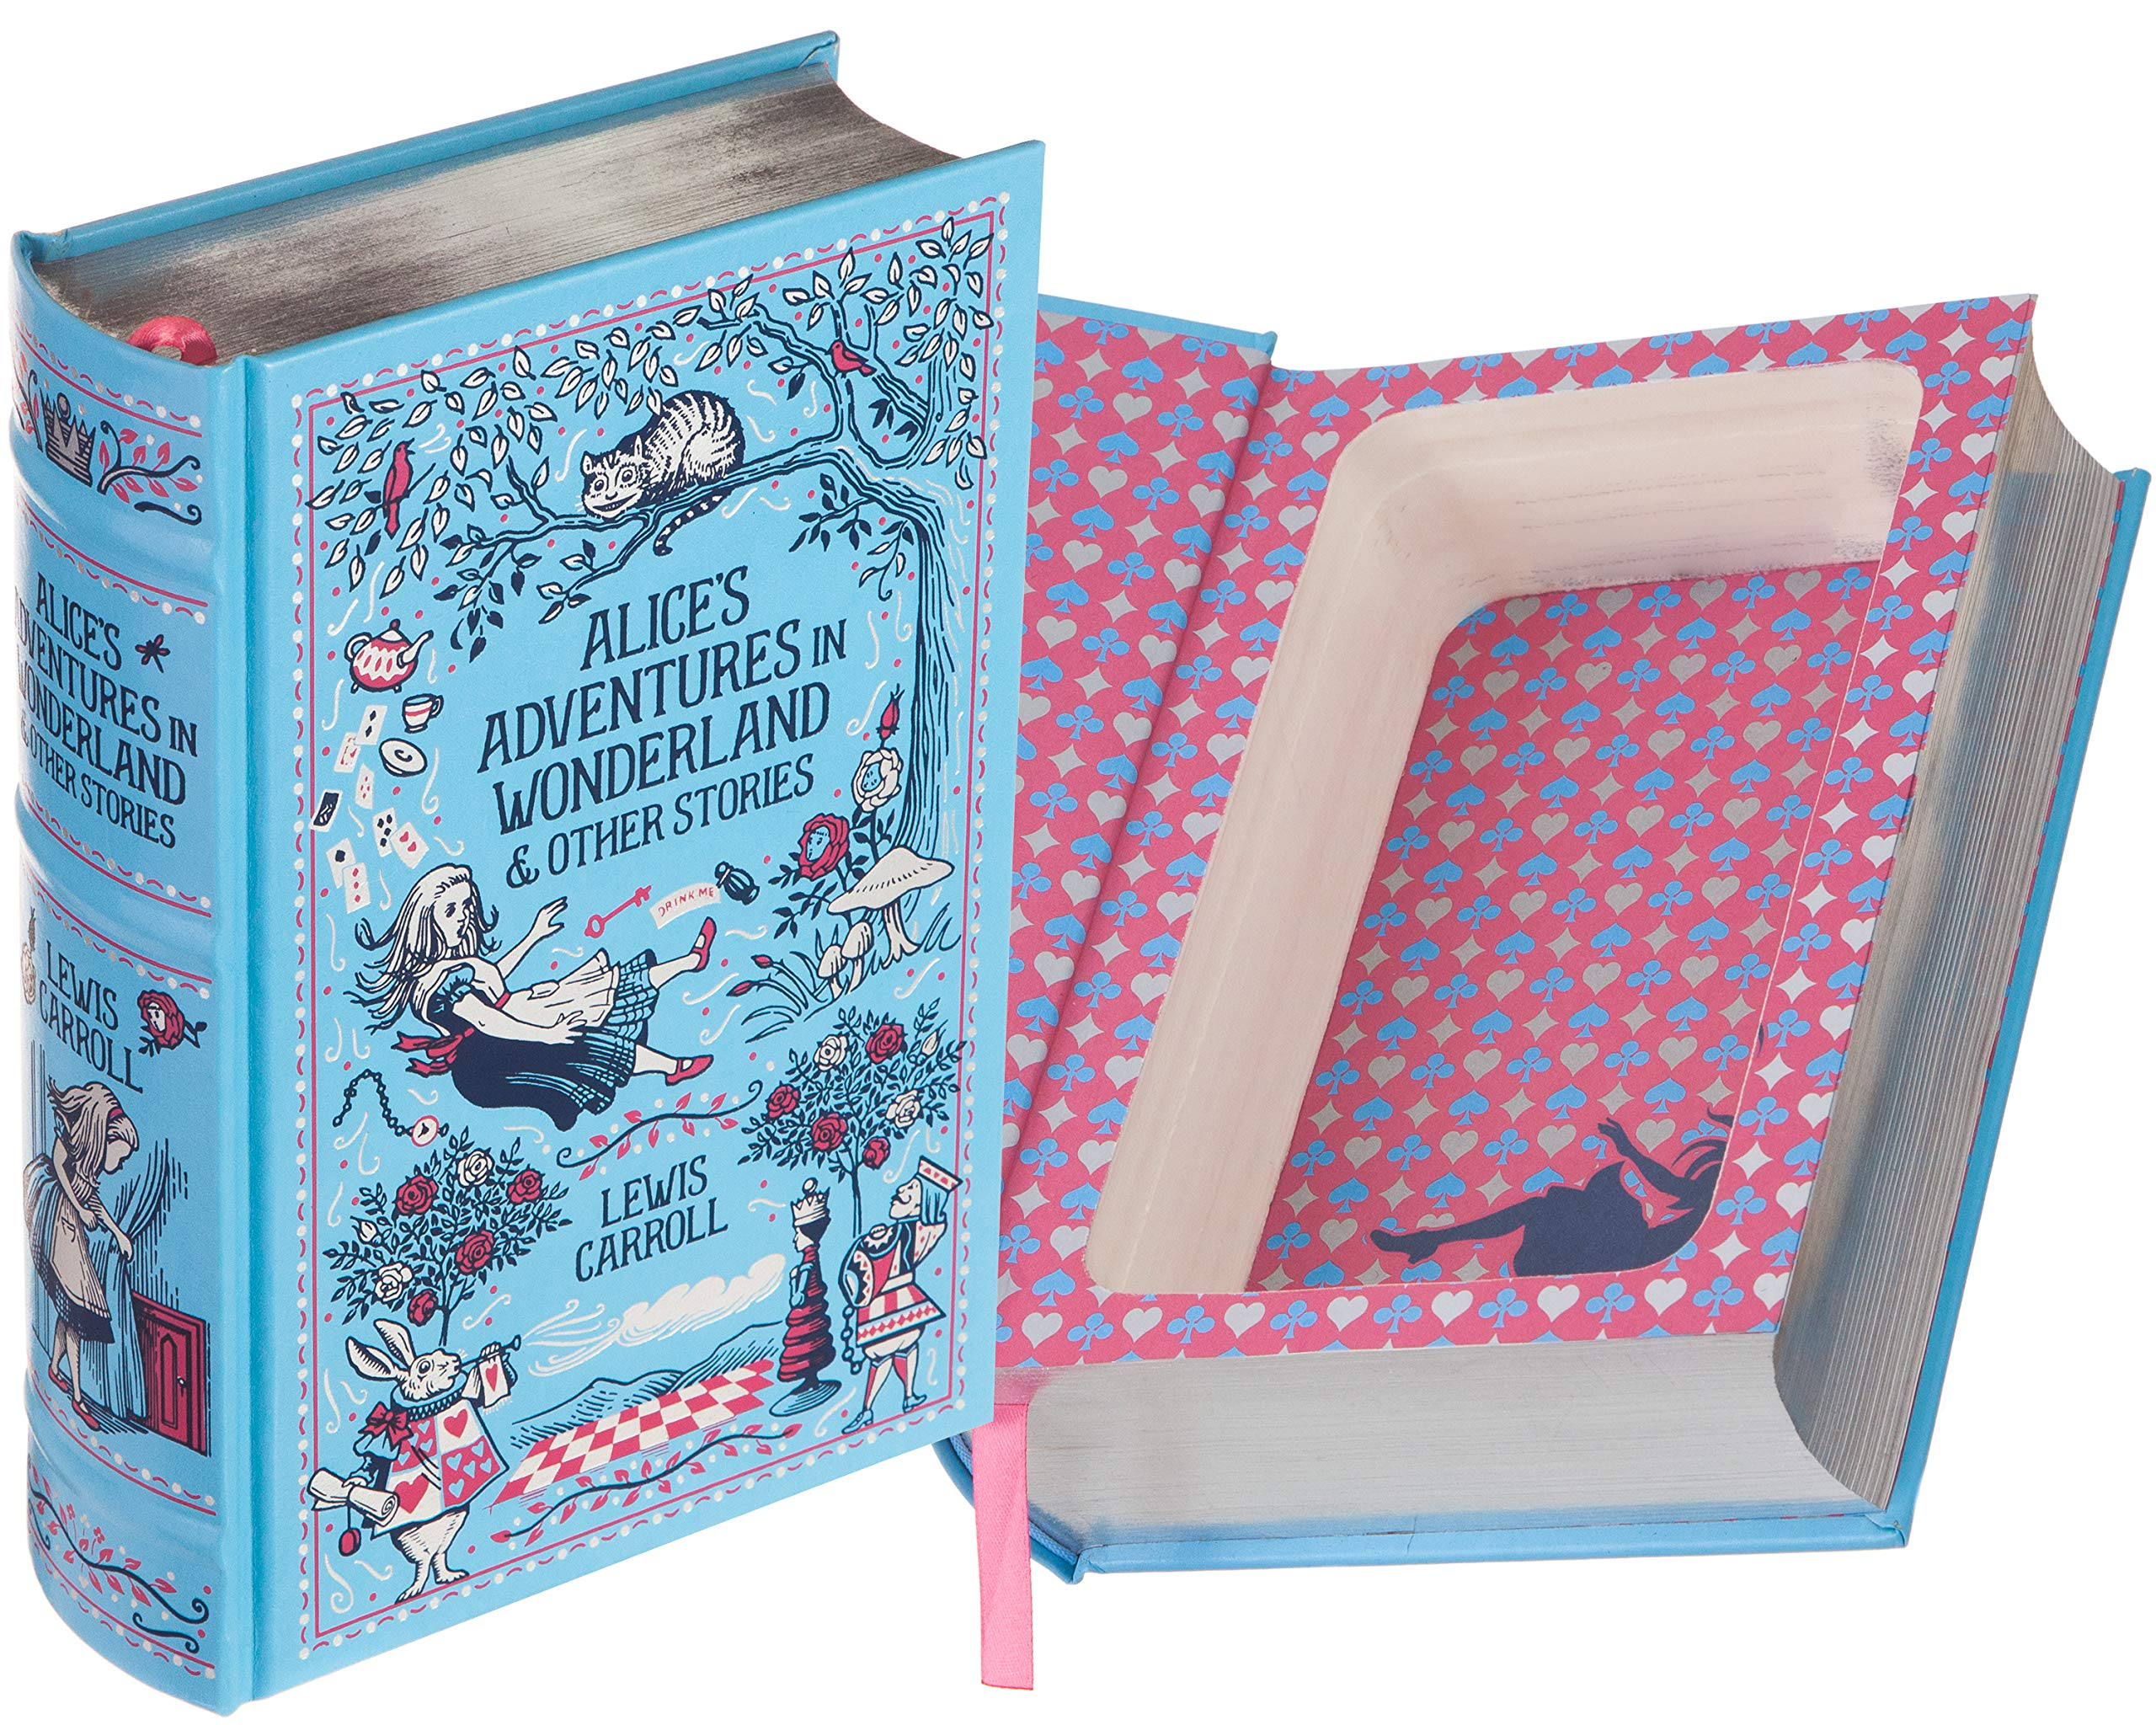 Real Hollow Book Safe - Alice's Adventures in Wonderland by Lewis Carroll (Magnetic Closure) (Leather-bound) by BookRooks